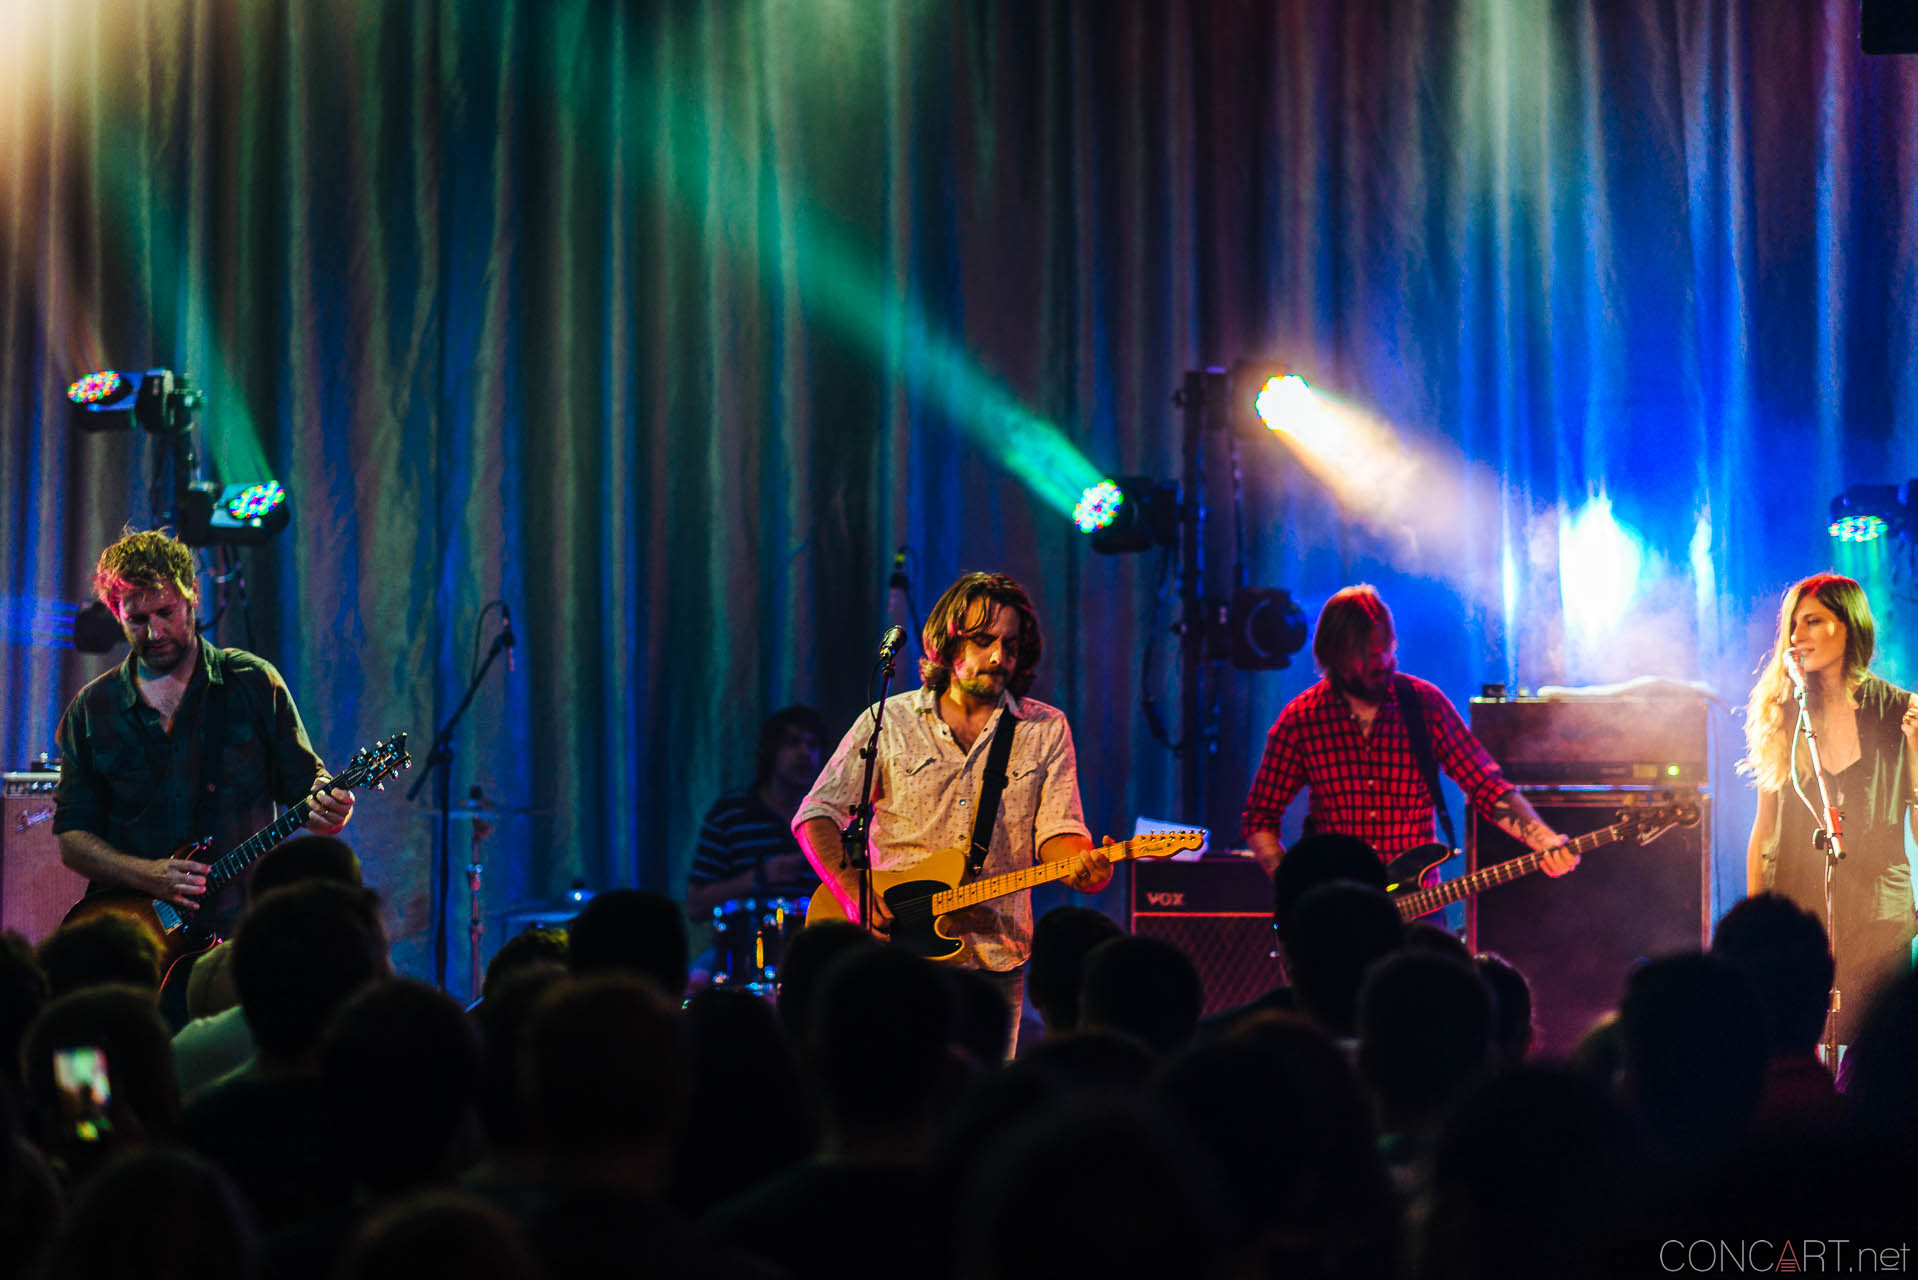 minus_the_bear_live_the_vogue_indianapolis_2013-52